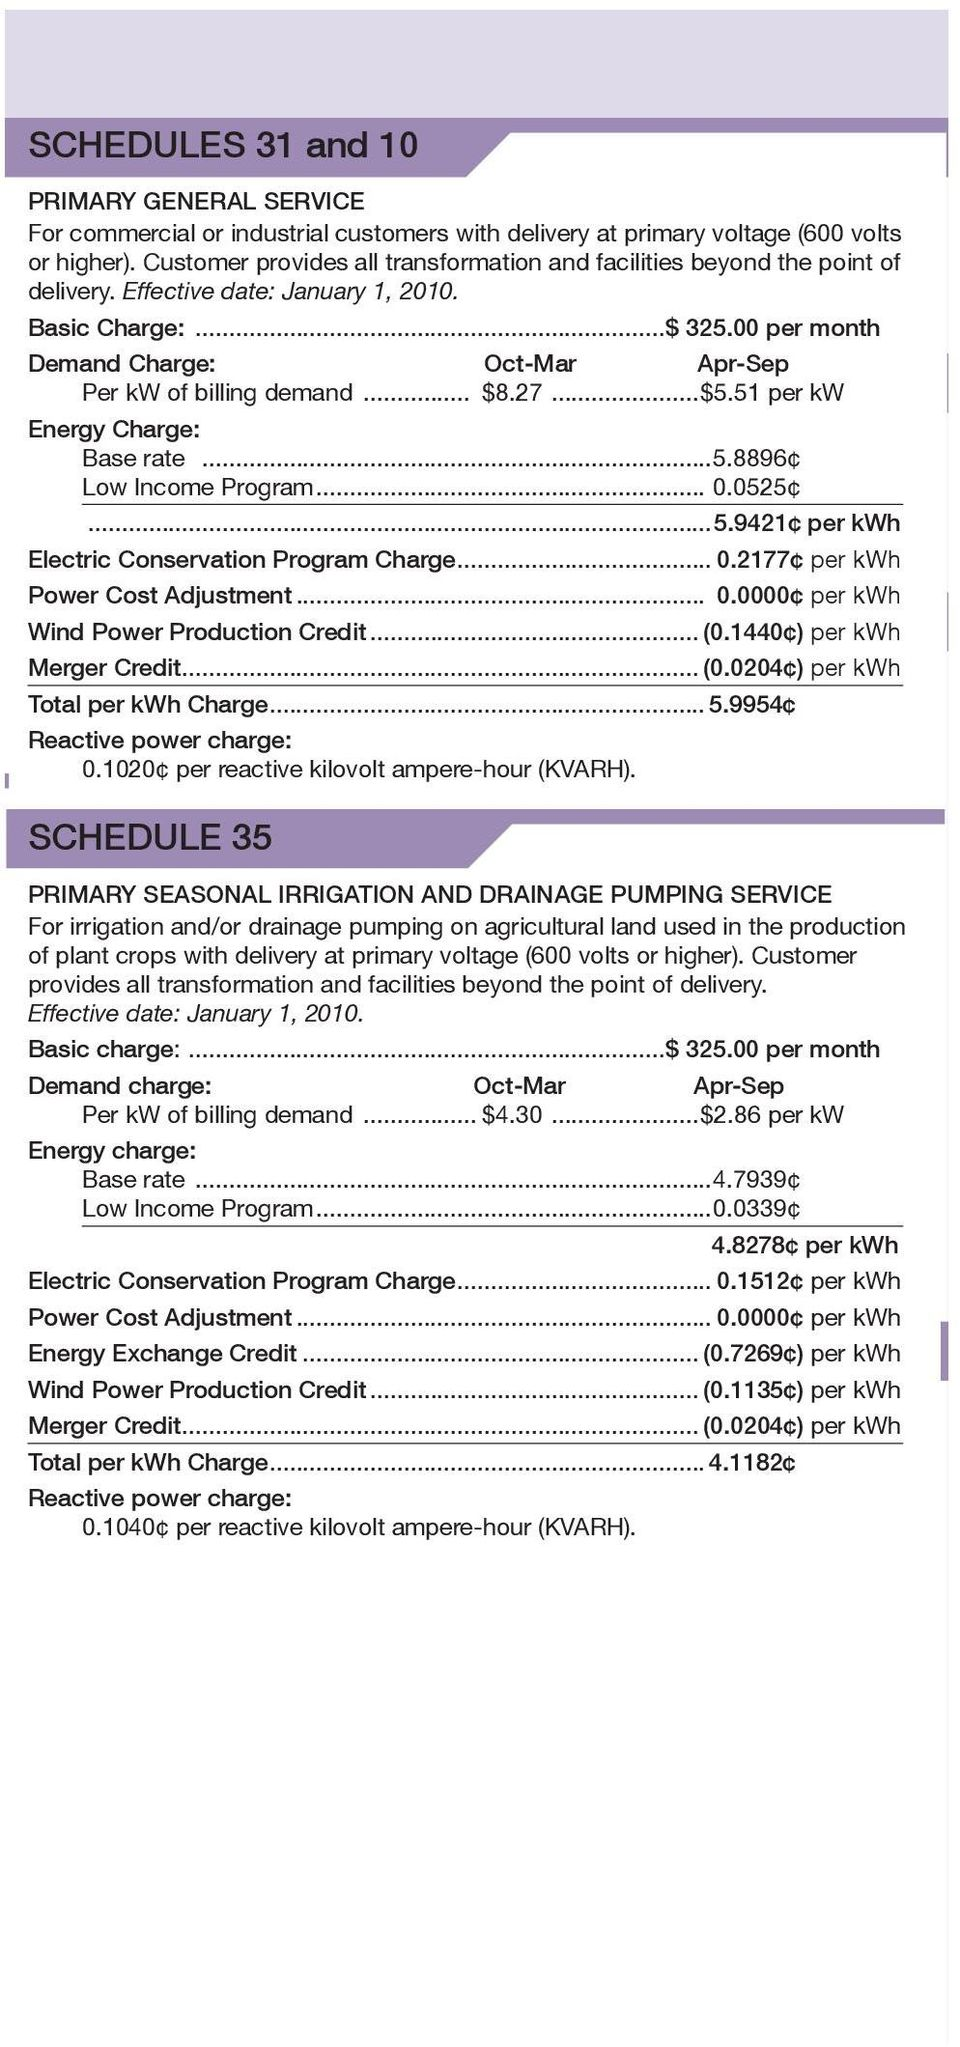 00 per month Demand Charge: Oct-Mar Apr-Sep Per kw of billing demand... $8.27...$5.51 per kw Base rate...5.8896 Low Income Program... 0.0525...5.9421 per kwh Electric Conservation Program Charge... 0.2177 per kwh Power Cost Adjustment.